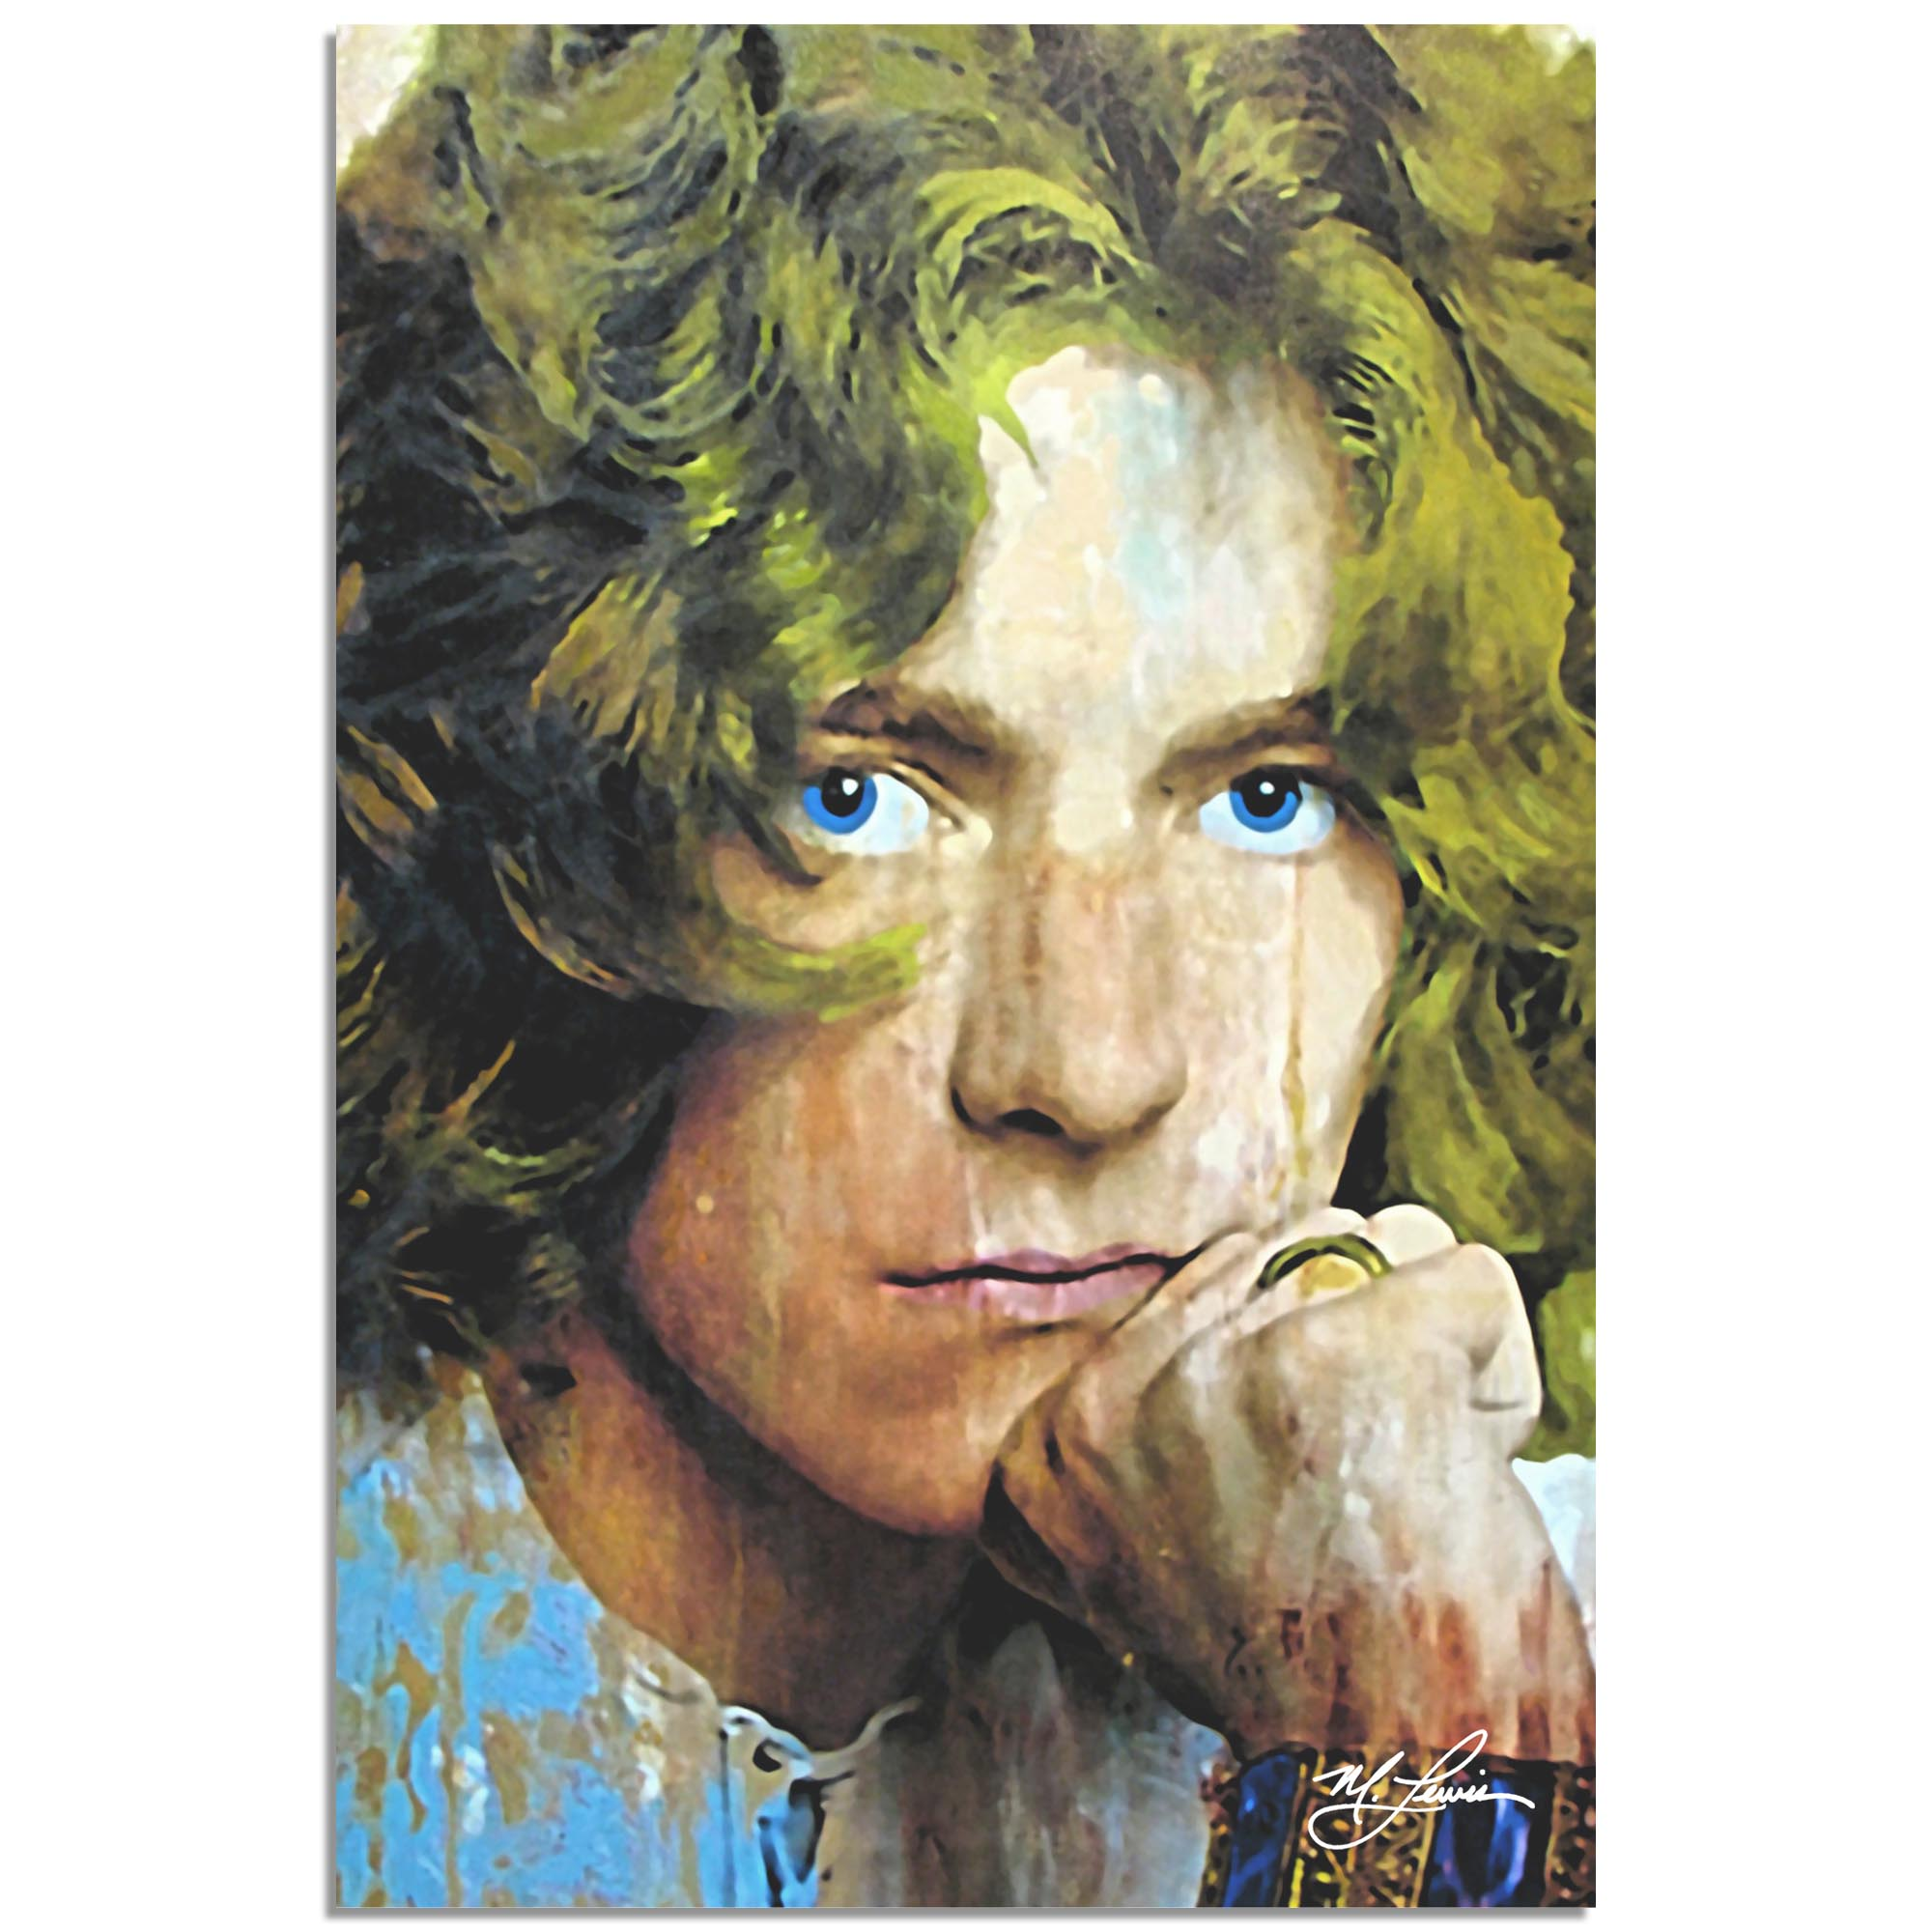 Mark Lewis 'Robert Plant Shear Power' 22in x 32in Celebrity Pop Art on Metal or Plexiglass